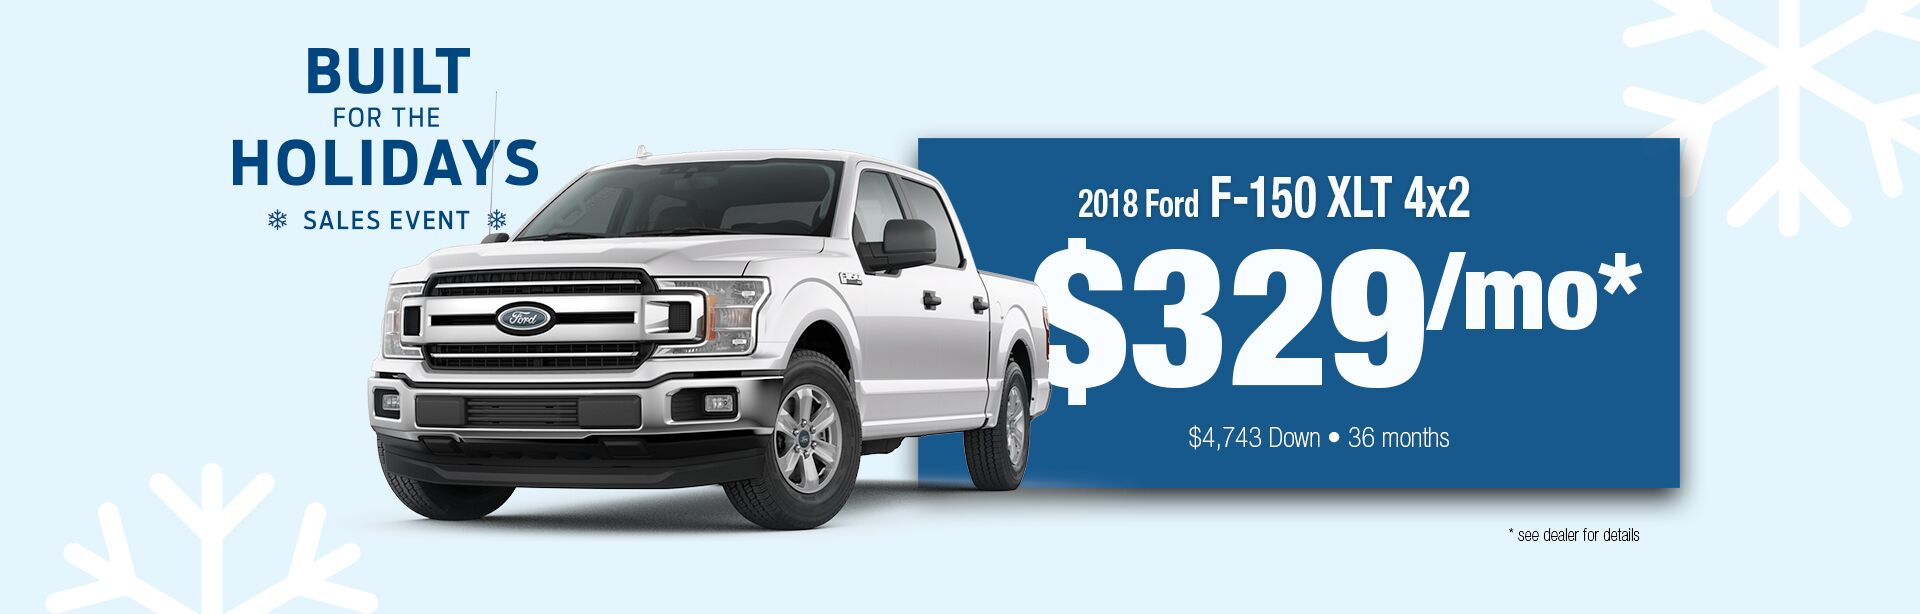 2018 ford f 150 built for the holidays